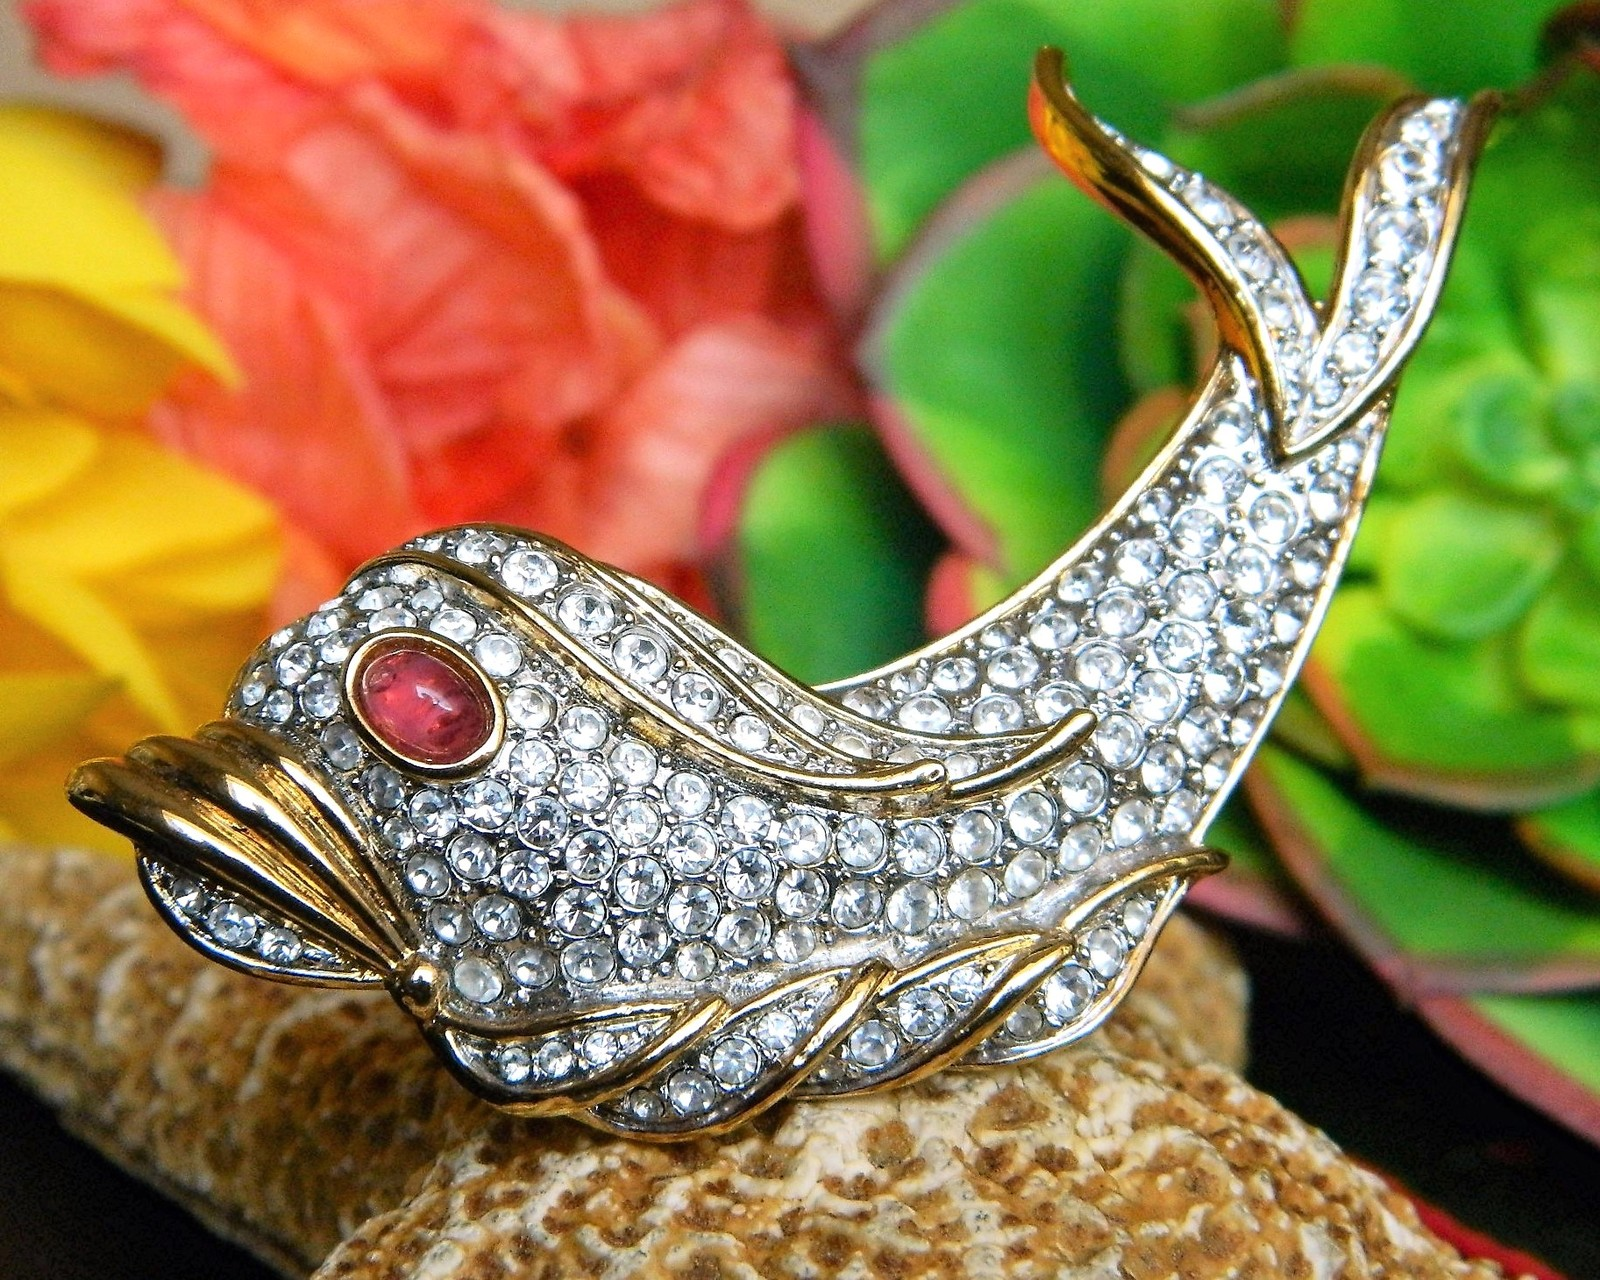 Vintage Fish Dolphin Brooch Pin Attwood Sawyer Rhinestones Signed A S